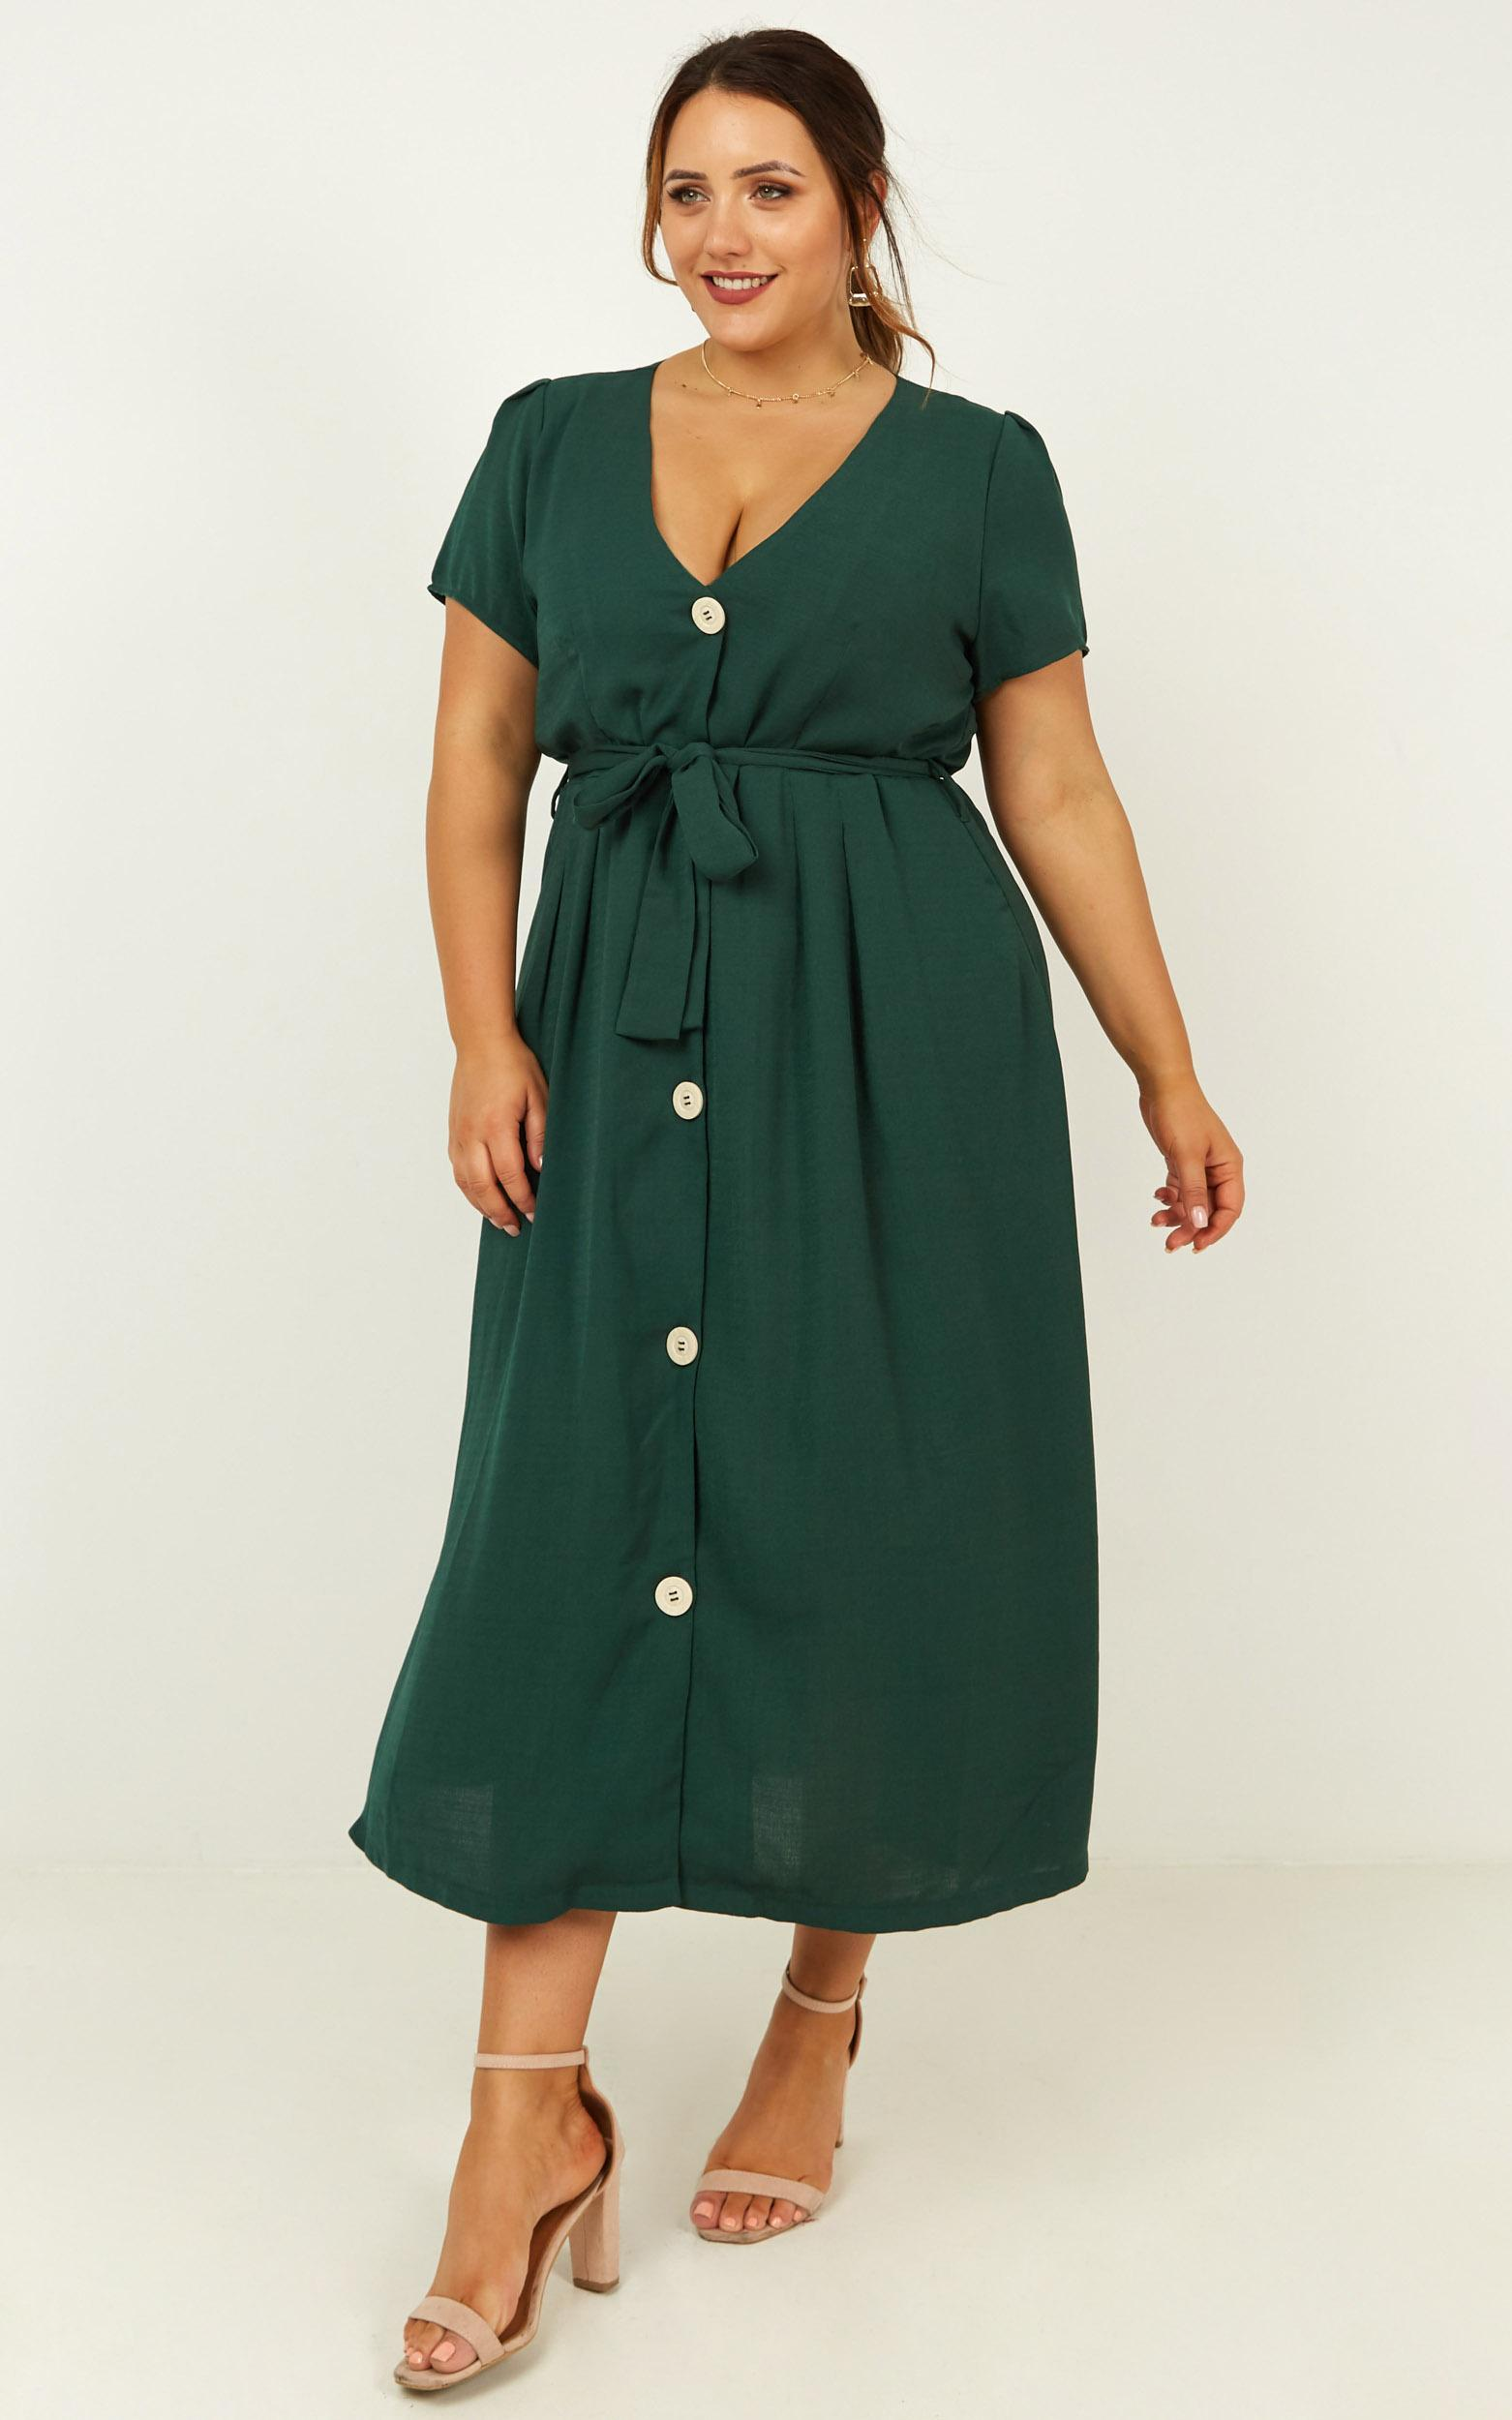 Research breakthrough Dress in emerald - 20 (XXXXL), Green, hi-res image number null